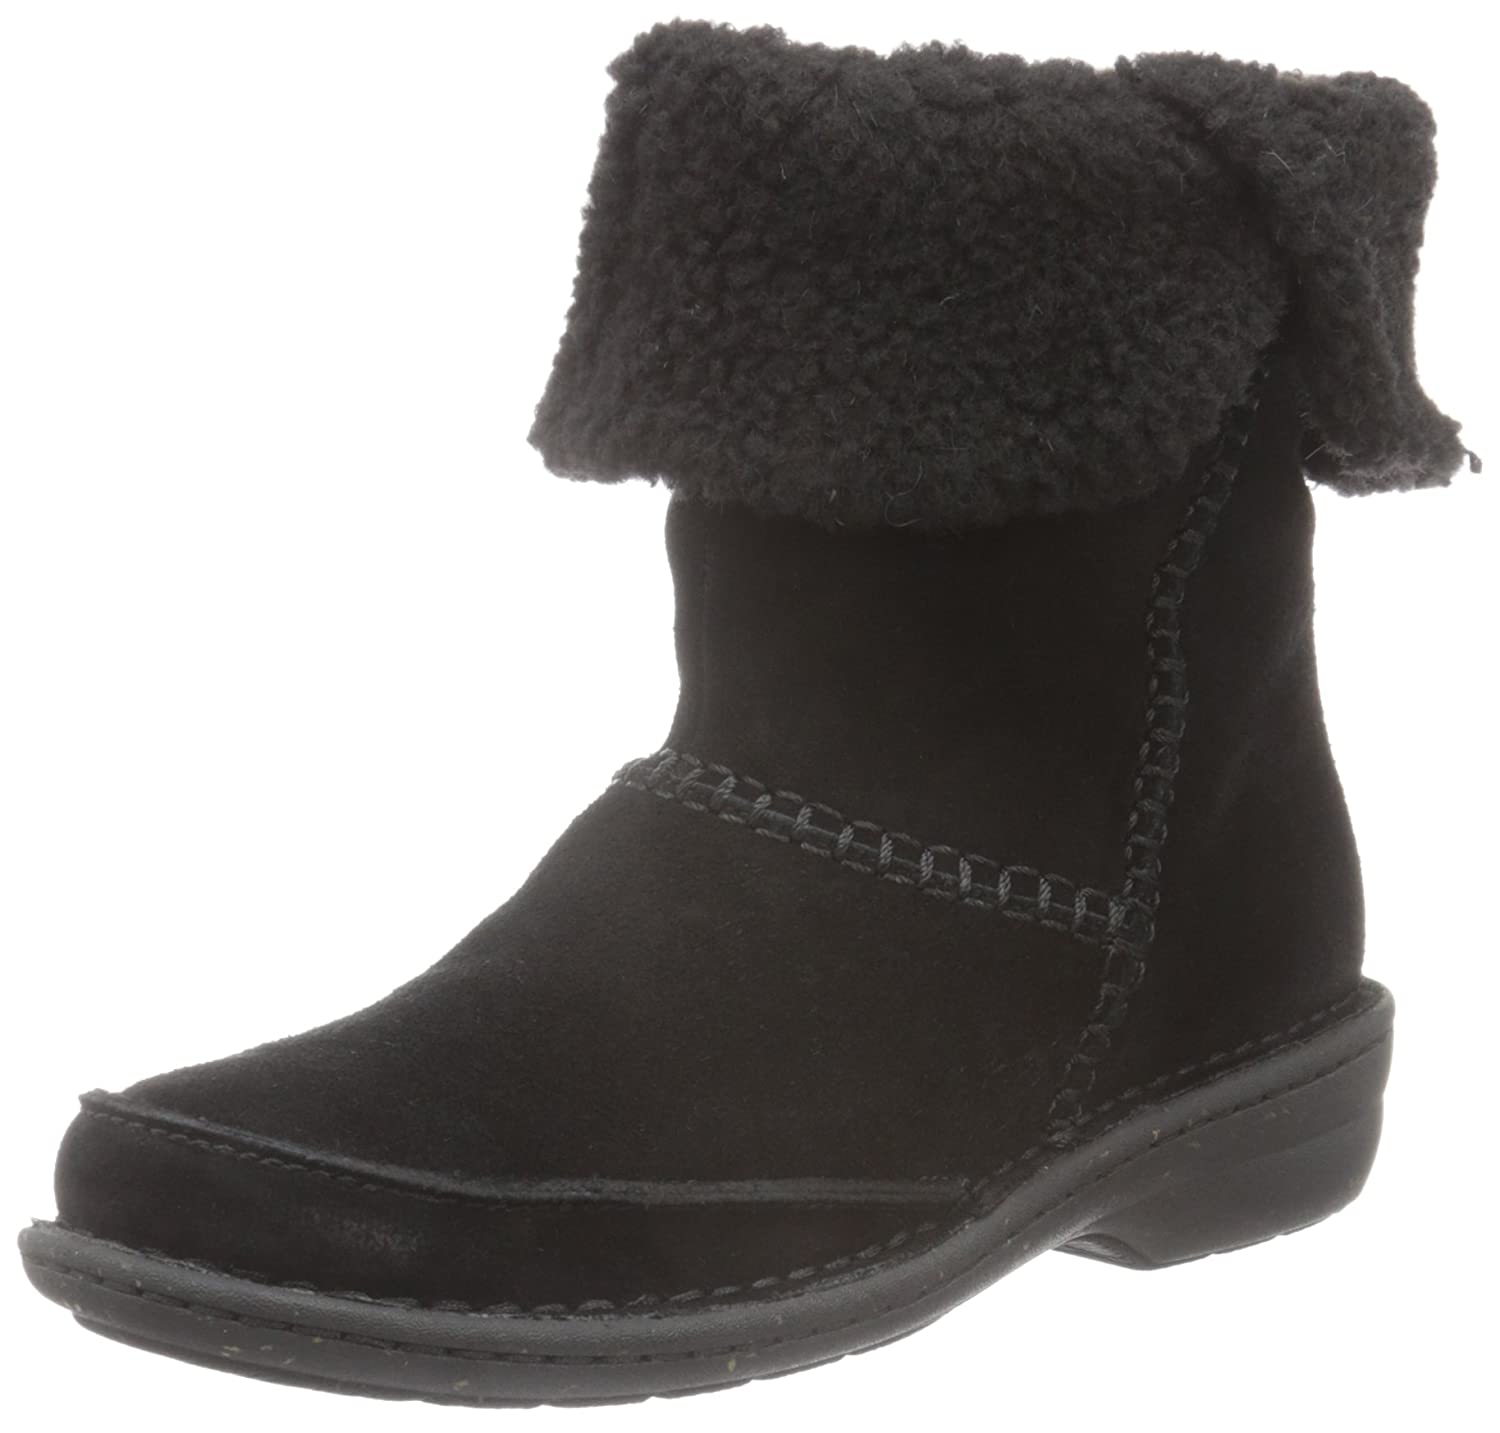 Clarks Women's Avington Grace Boots